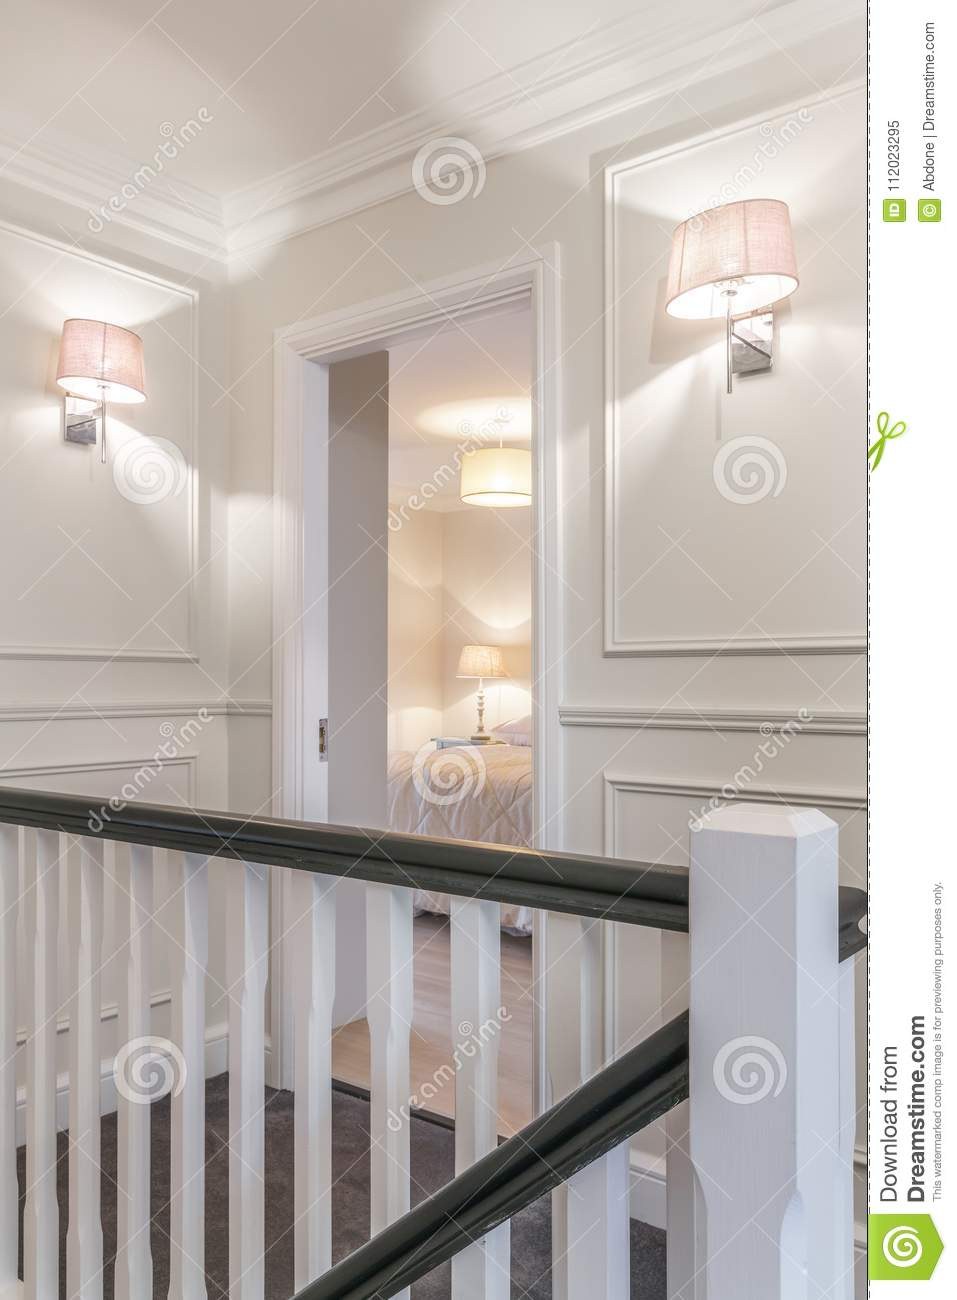 Download Nice Hallway And The Bedroom Door In A House Stock Image   Image  Of Bright